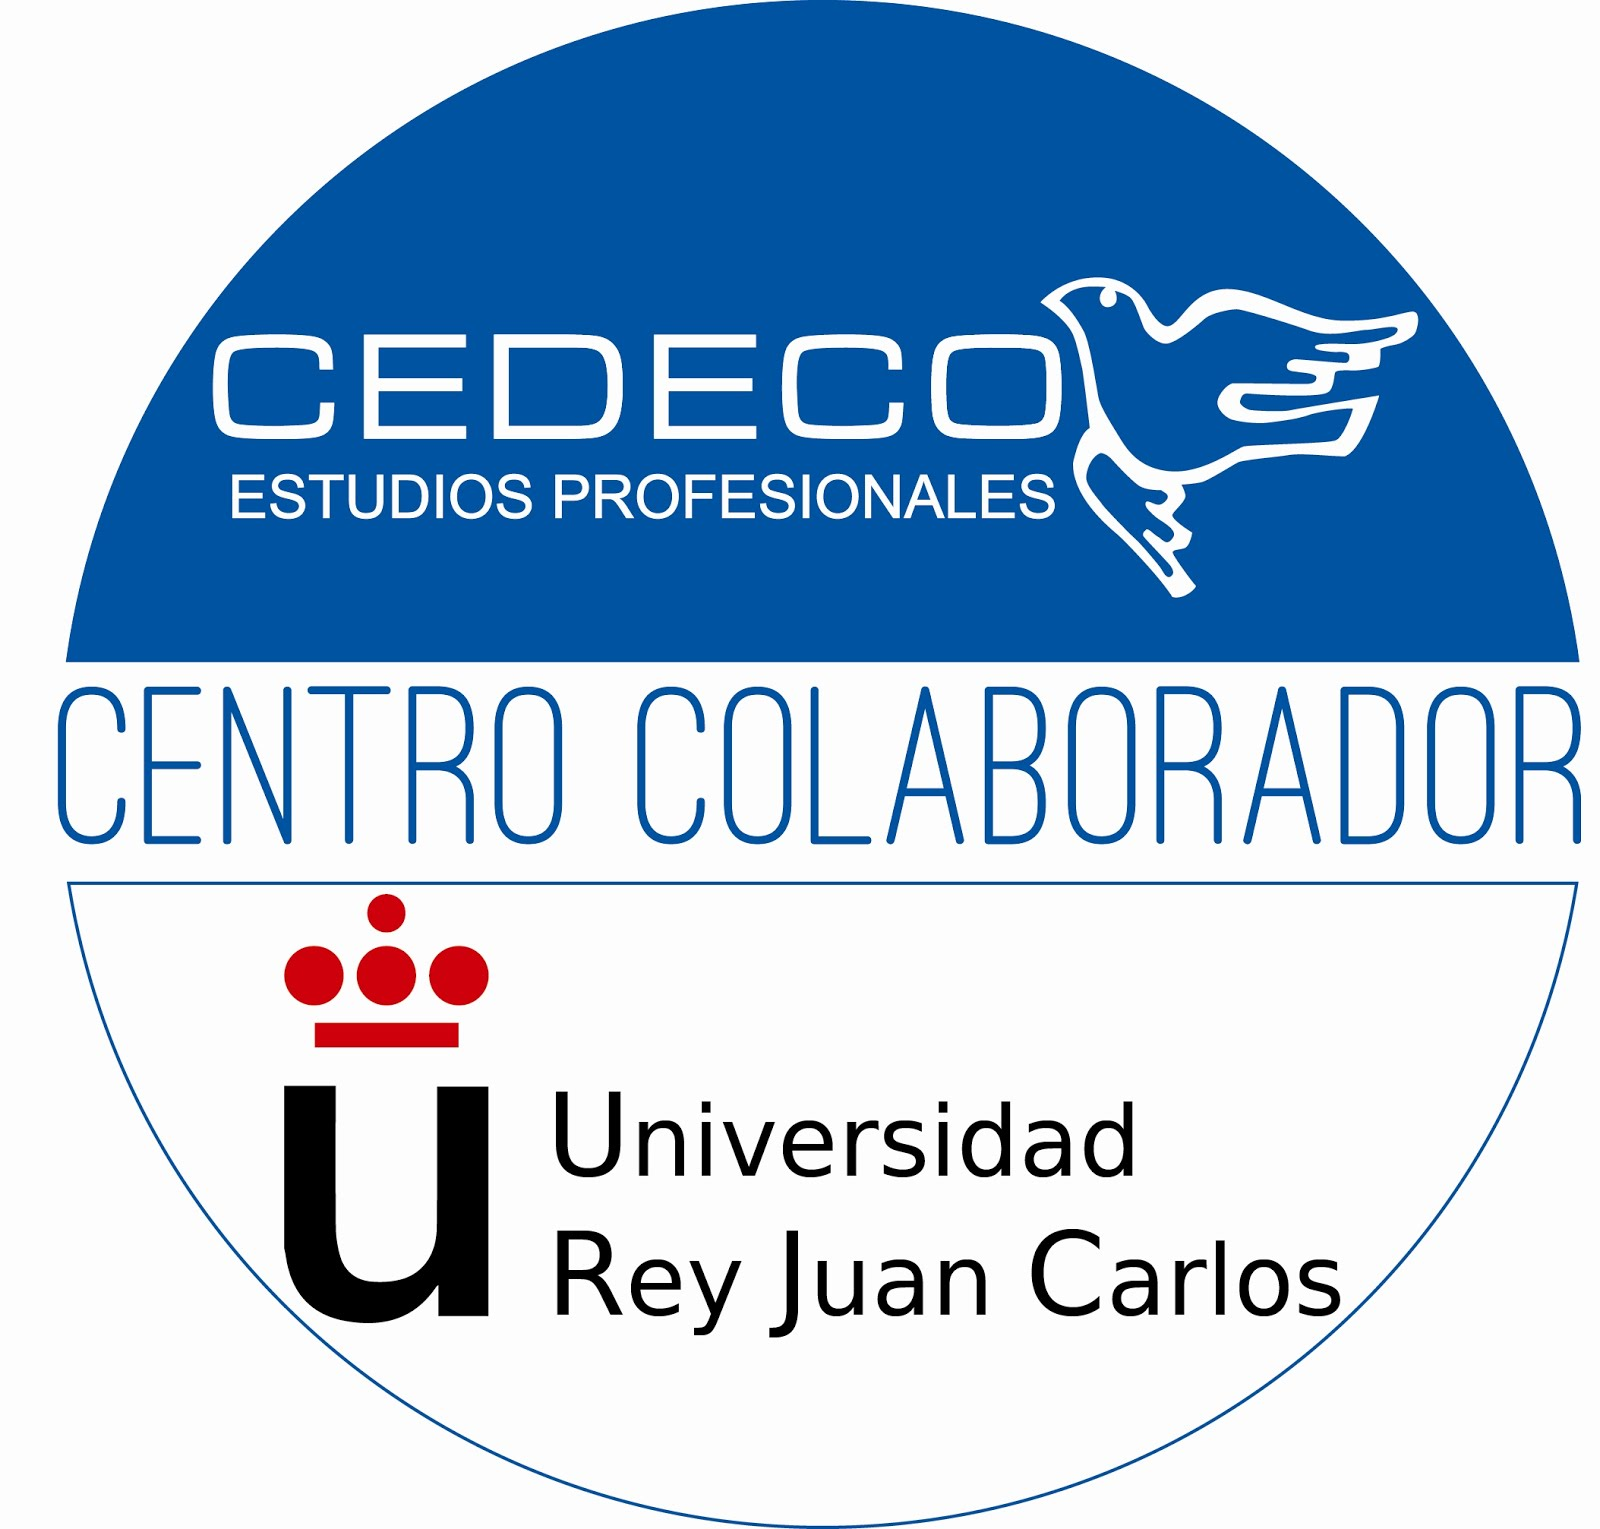 Centro colaborador